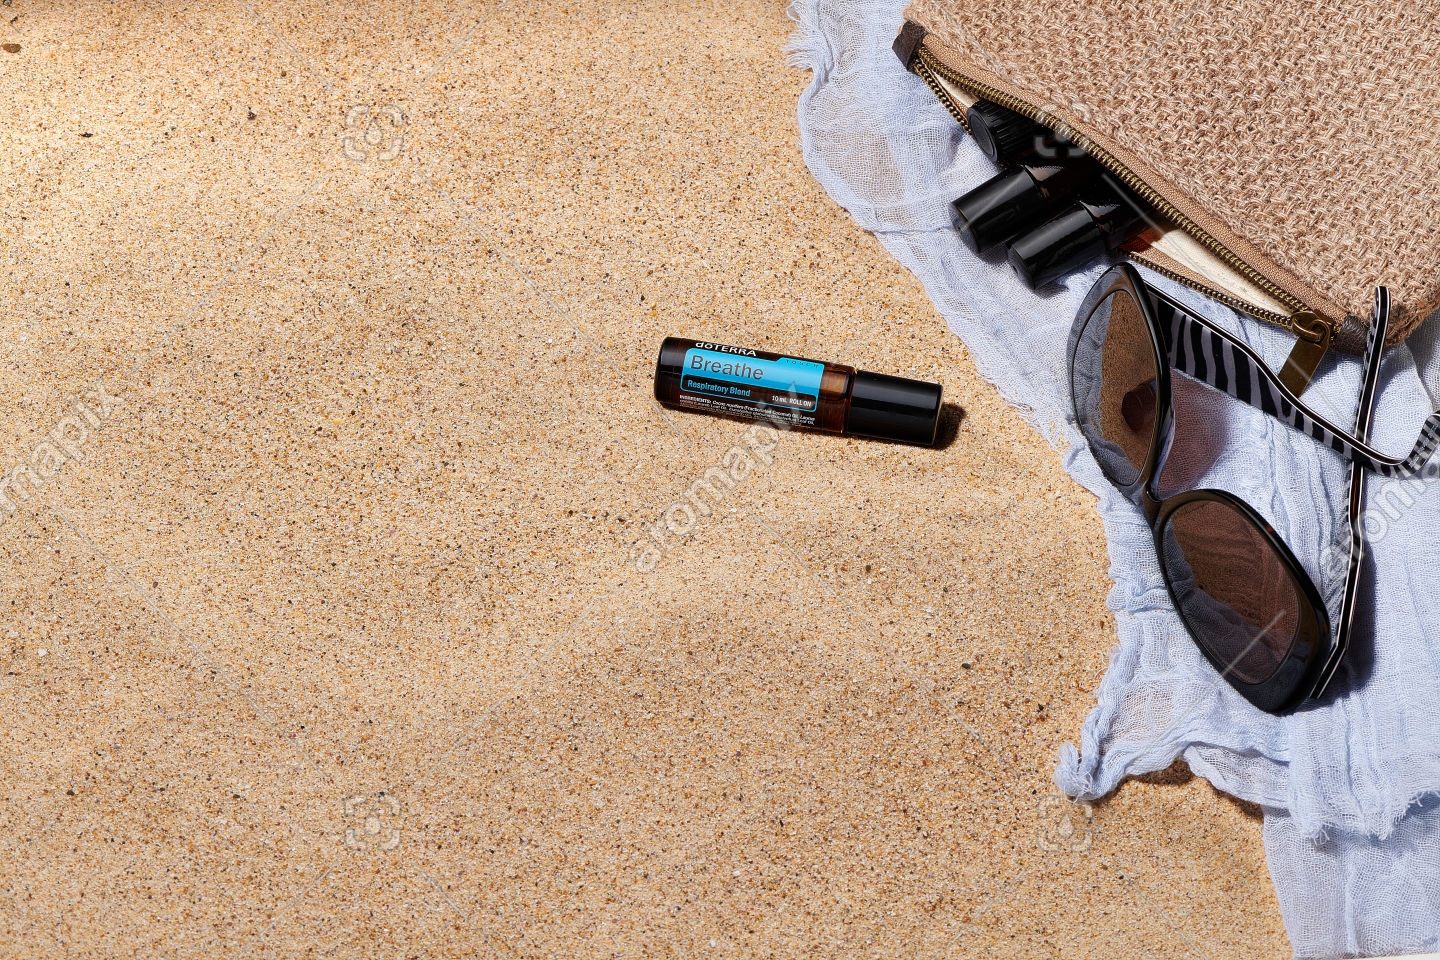 doTERRA Breathe Touch with accessories on sand